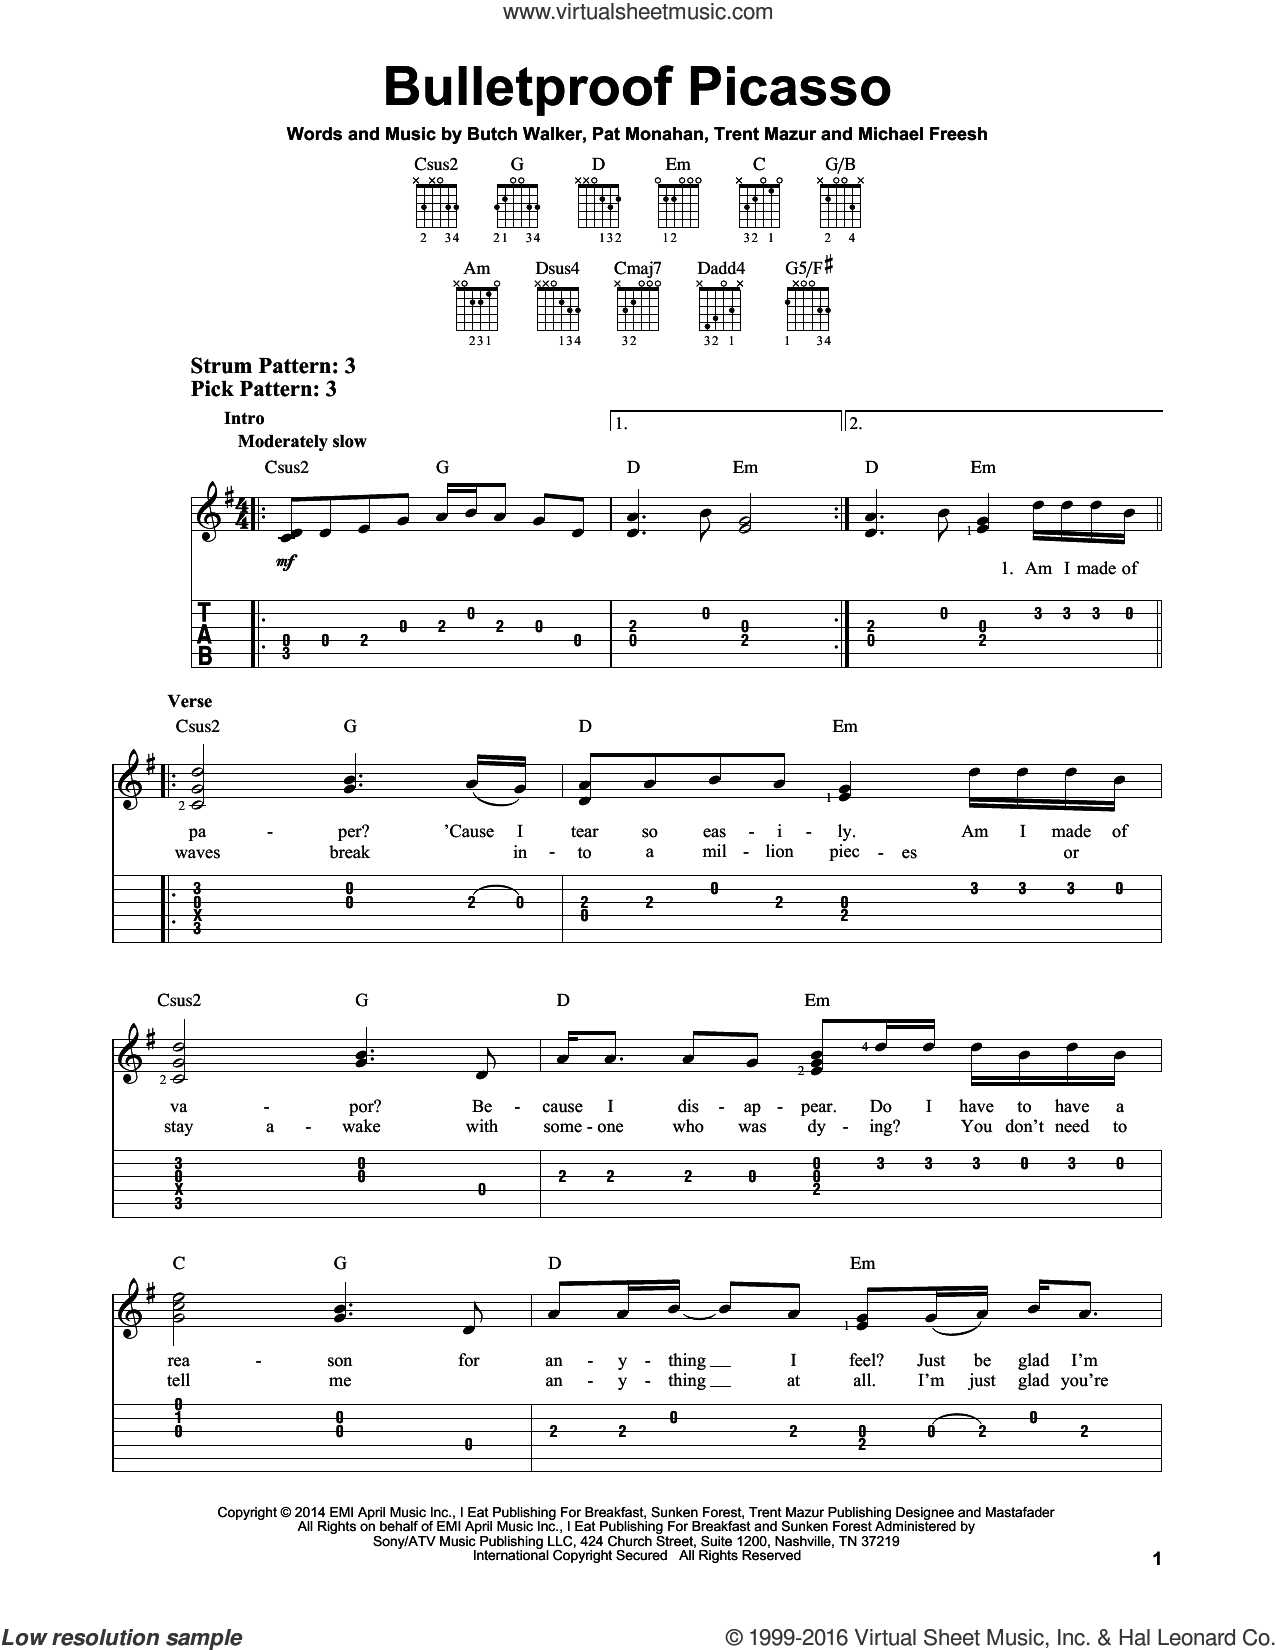 Bulletproof Picasso sheet music for guitar solo (easy tablature) by Train, Butch Walker, Michael Freesh, Pat Monahan and Trent Mazur, easy guitar (easy tablature)